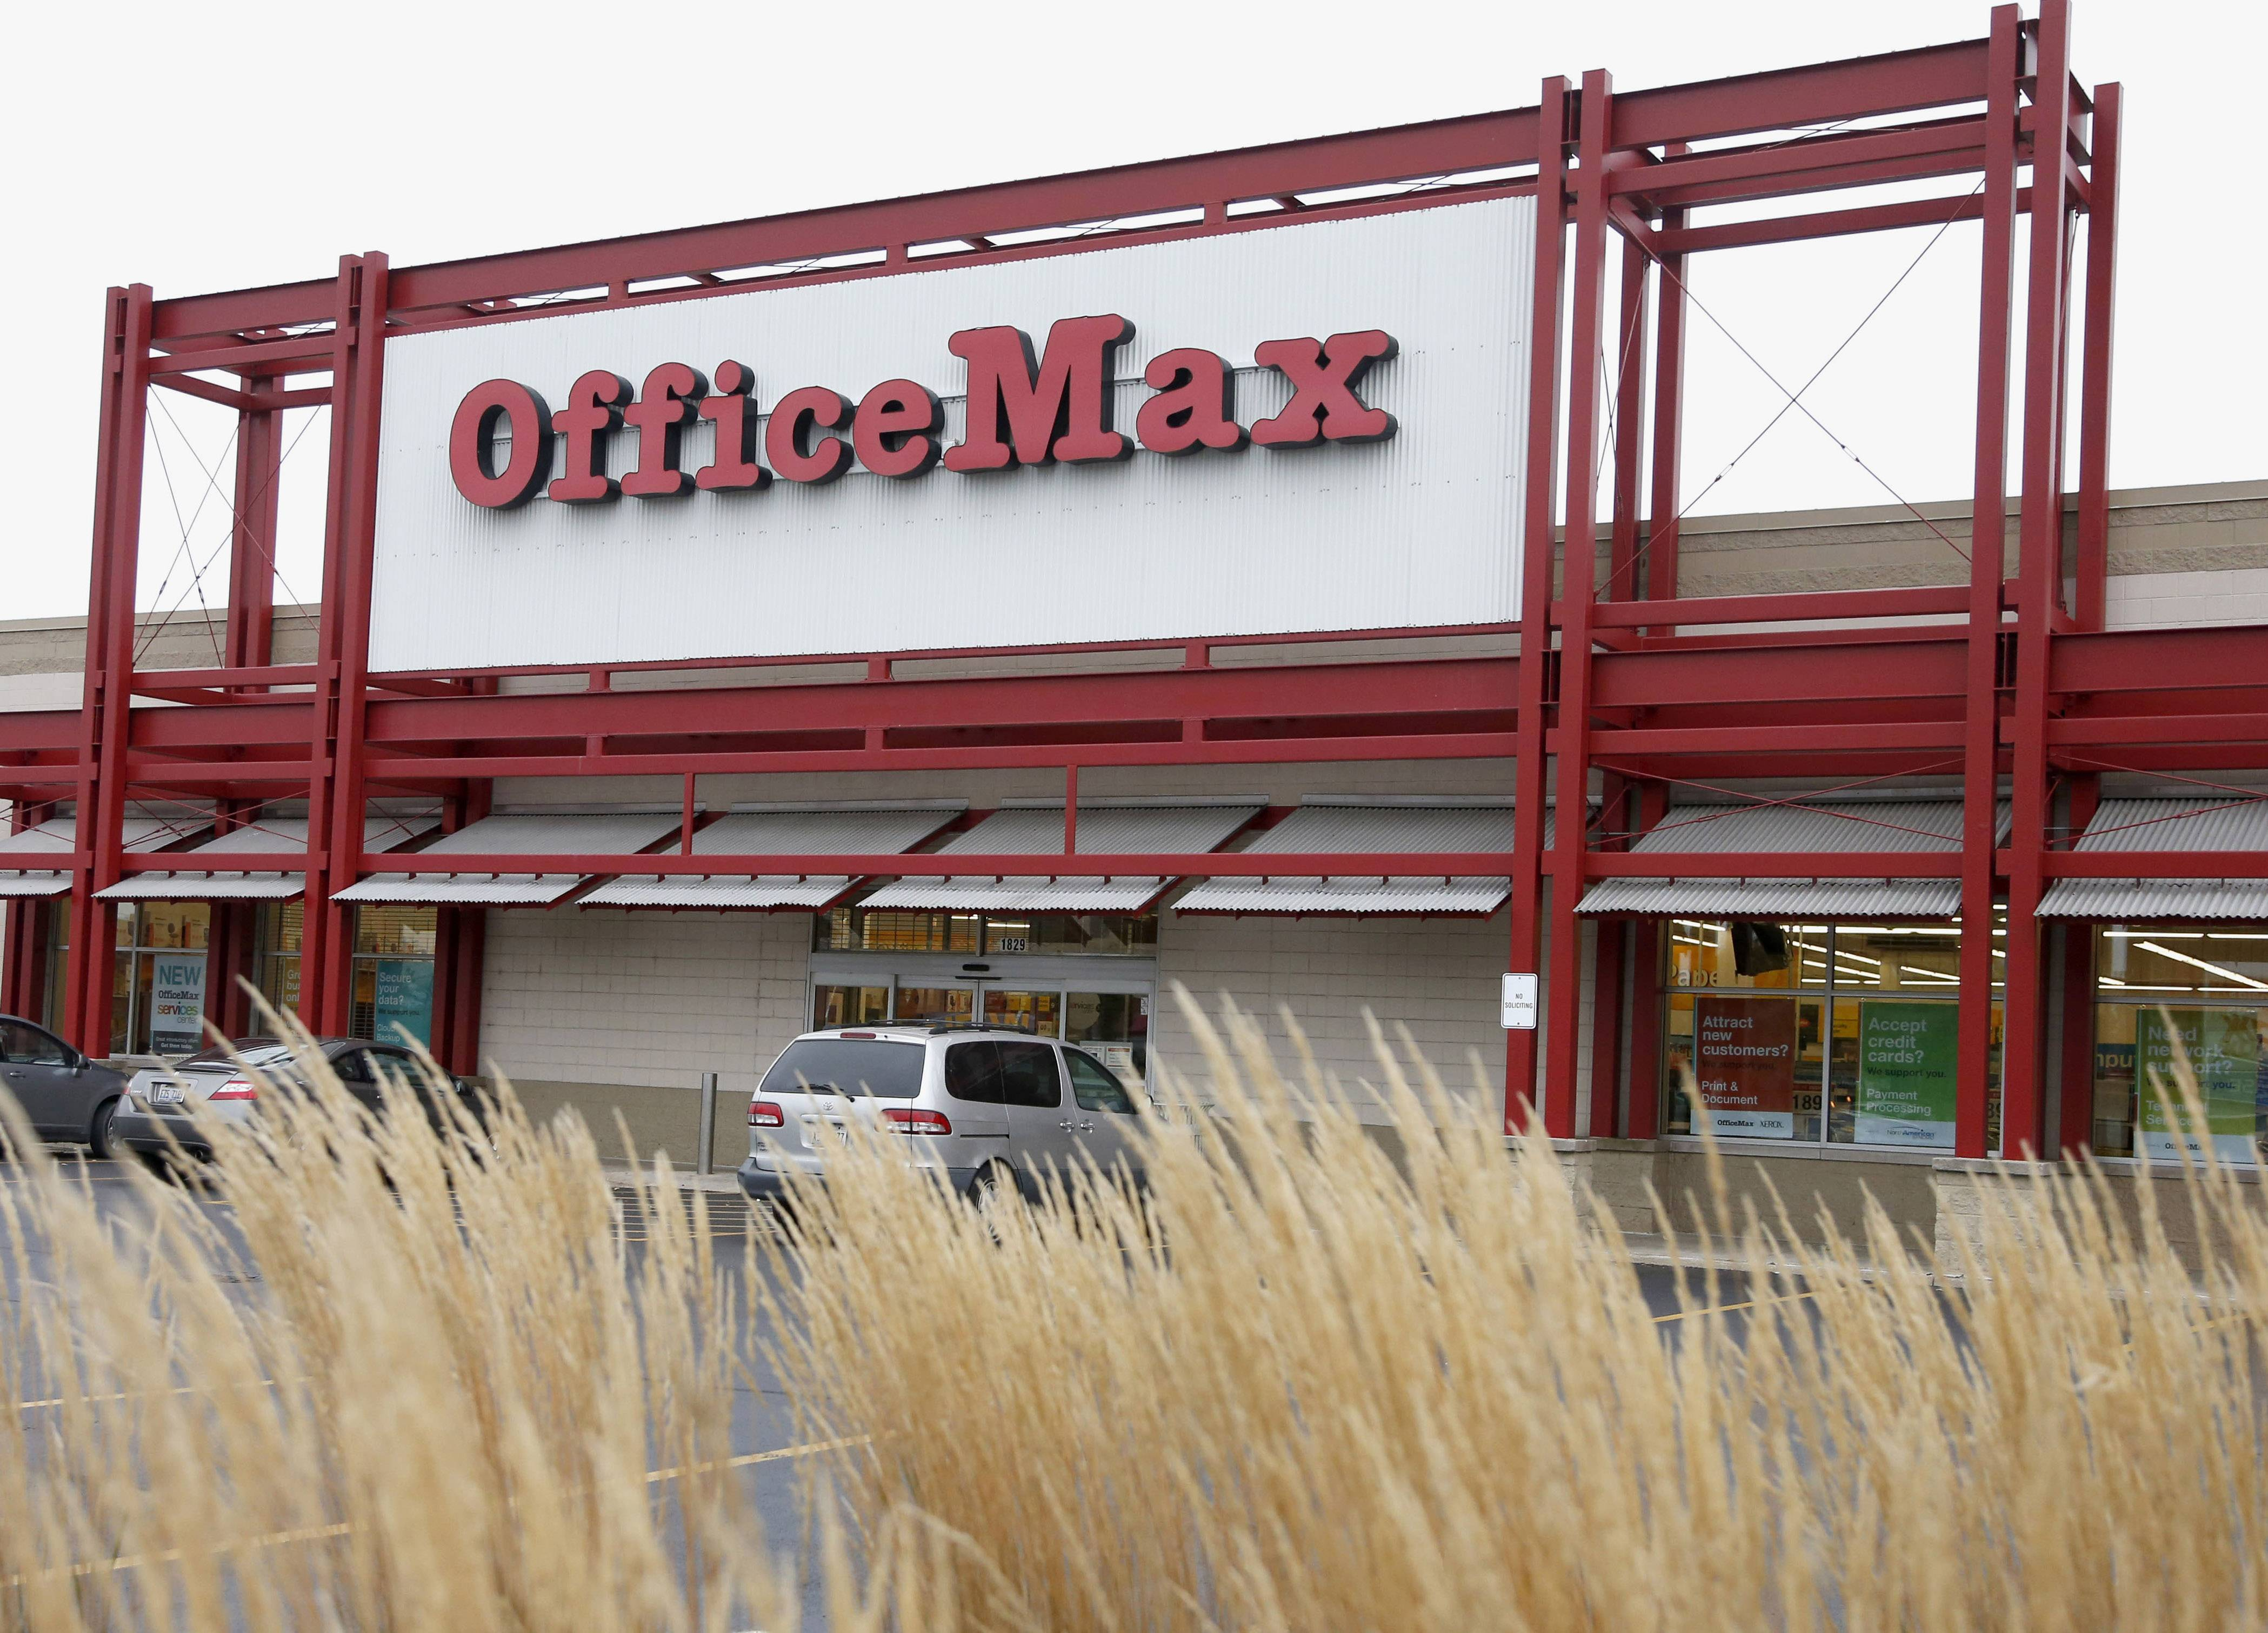 Office Depot is planning to close at least 400 U.S. stores, as its merger with Naperville-based OfficeMax resulted in an overlap of retail locations that can be consolidated.